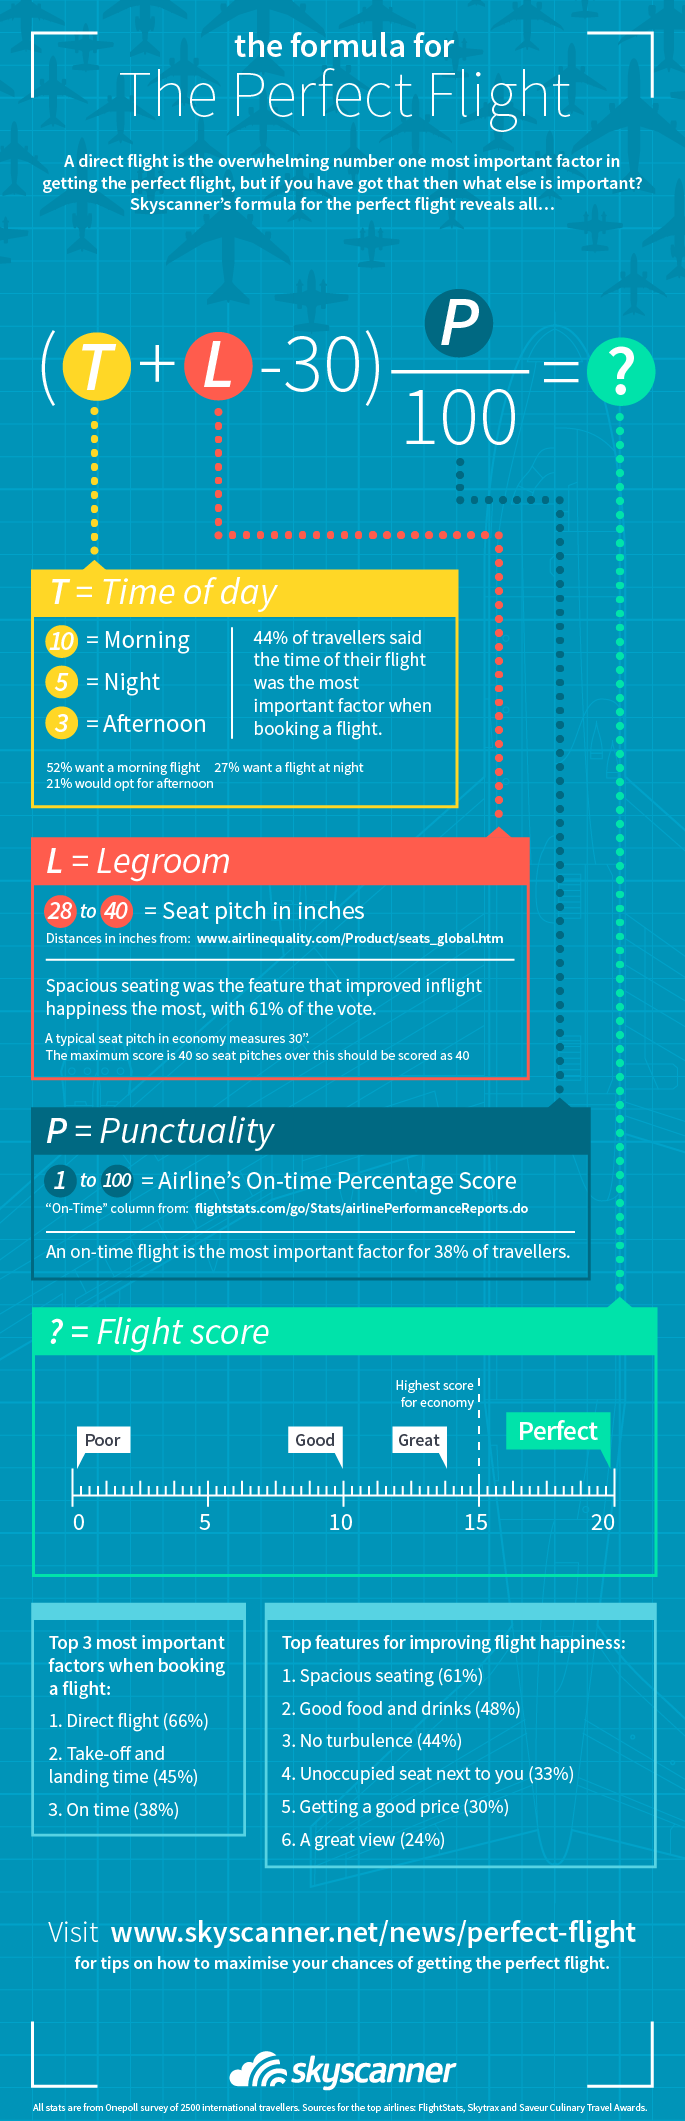 Skyscanner reveals formula for the perfect flight | Skyscanner's